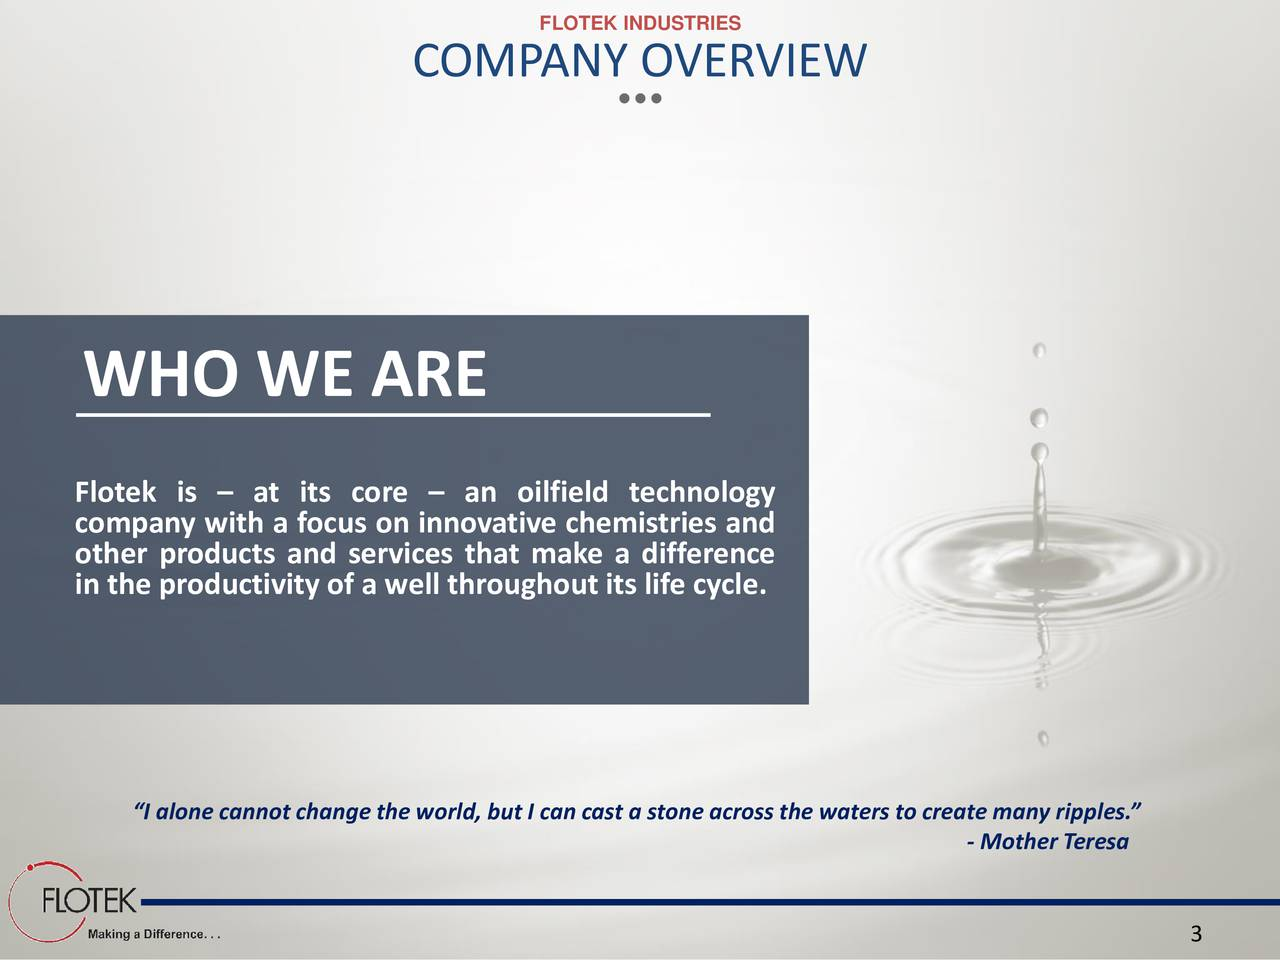 COMPANY OVERVIEW WHO WE ARE Flotek is  at its core  an oilfield technology company with a focus on innovative chemistries and other products and services that make a difference in the productivity of a well throughout its life cycle. I alone cannot change the world, but I can cast a stone across the waters to create many ripples. - Mother Teresa 3